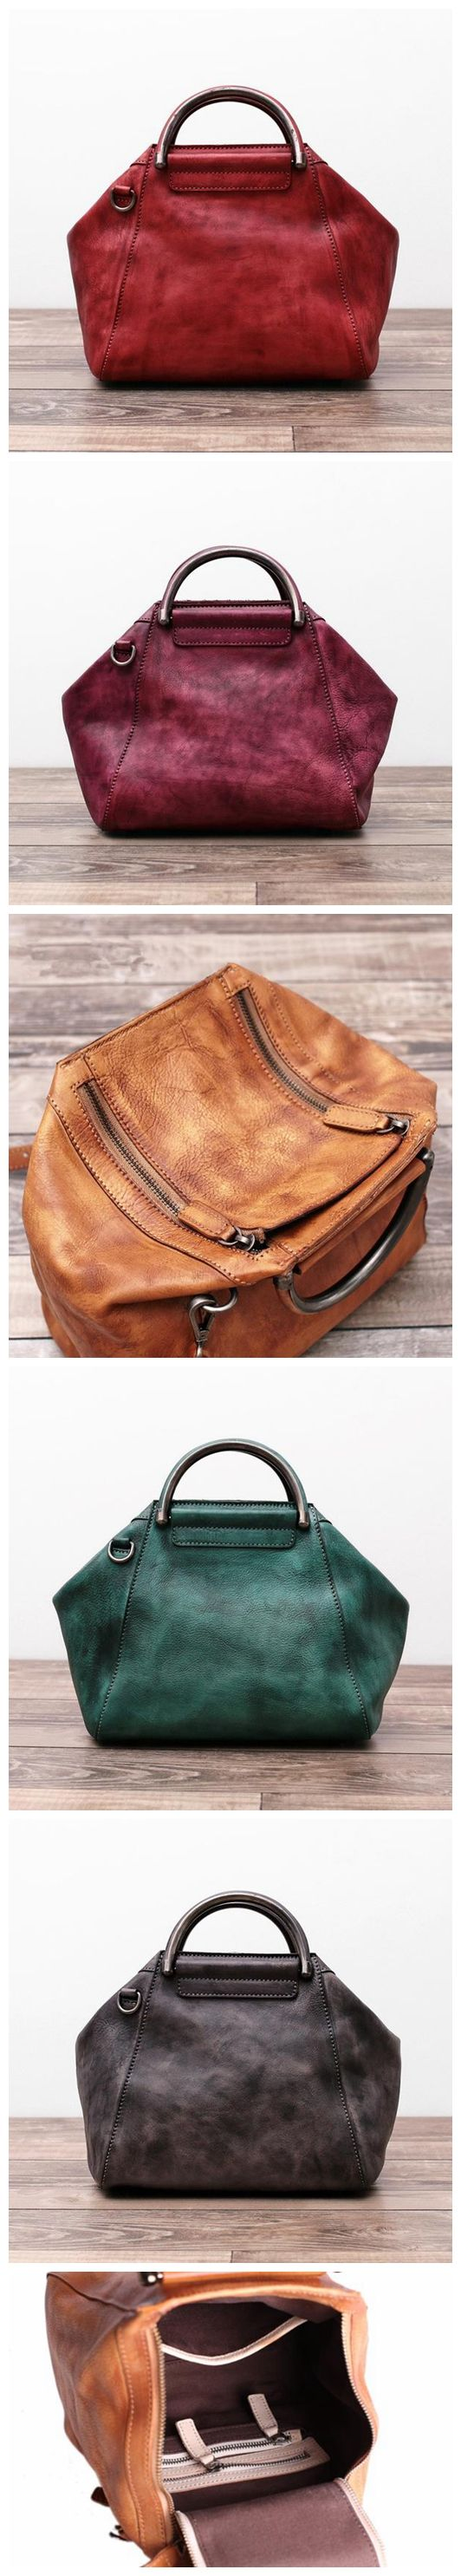 Leather Messenger Bag Women Shoulder Bag Satchel Bag WF52